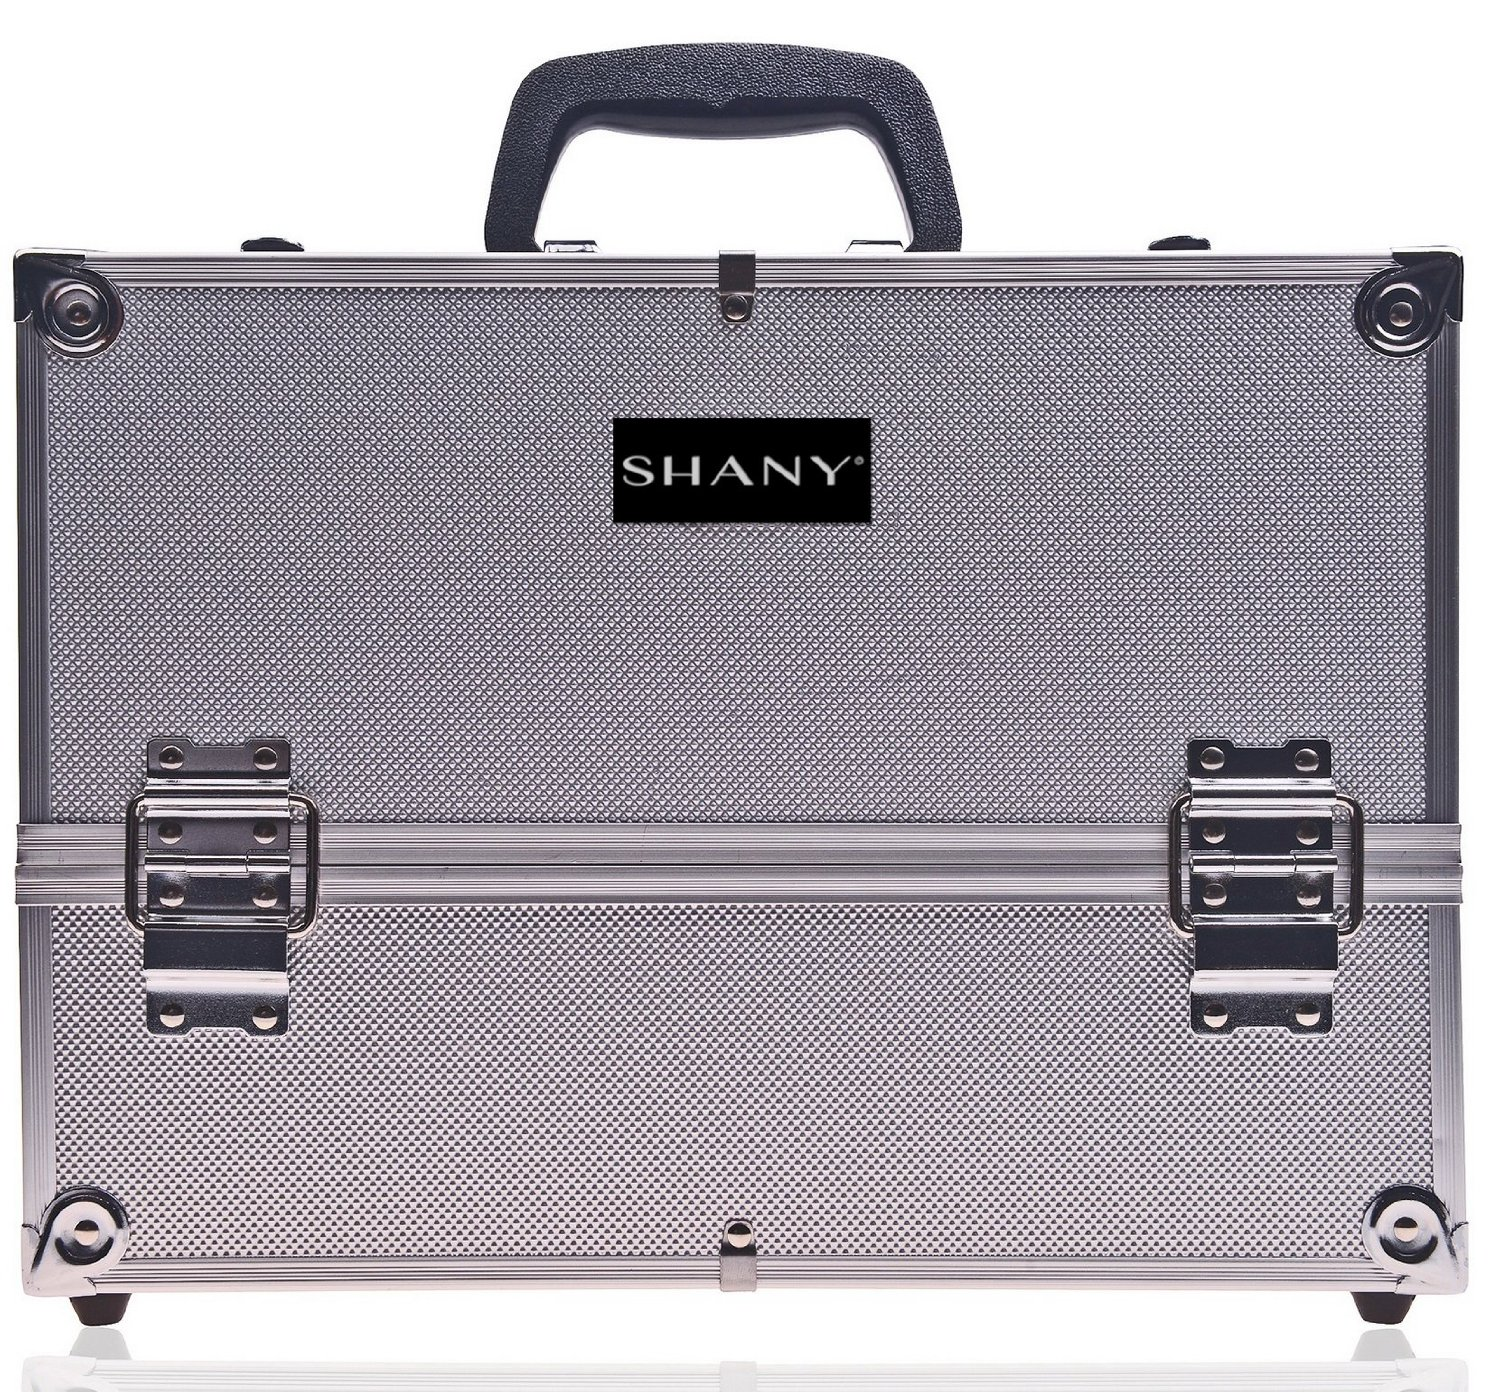 Makeup case from The Big Bang Theory